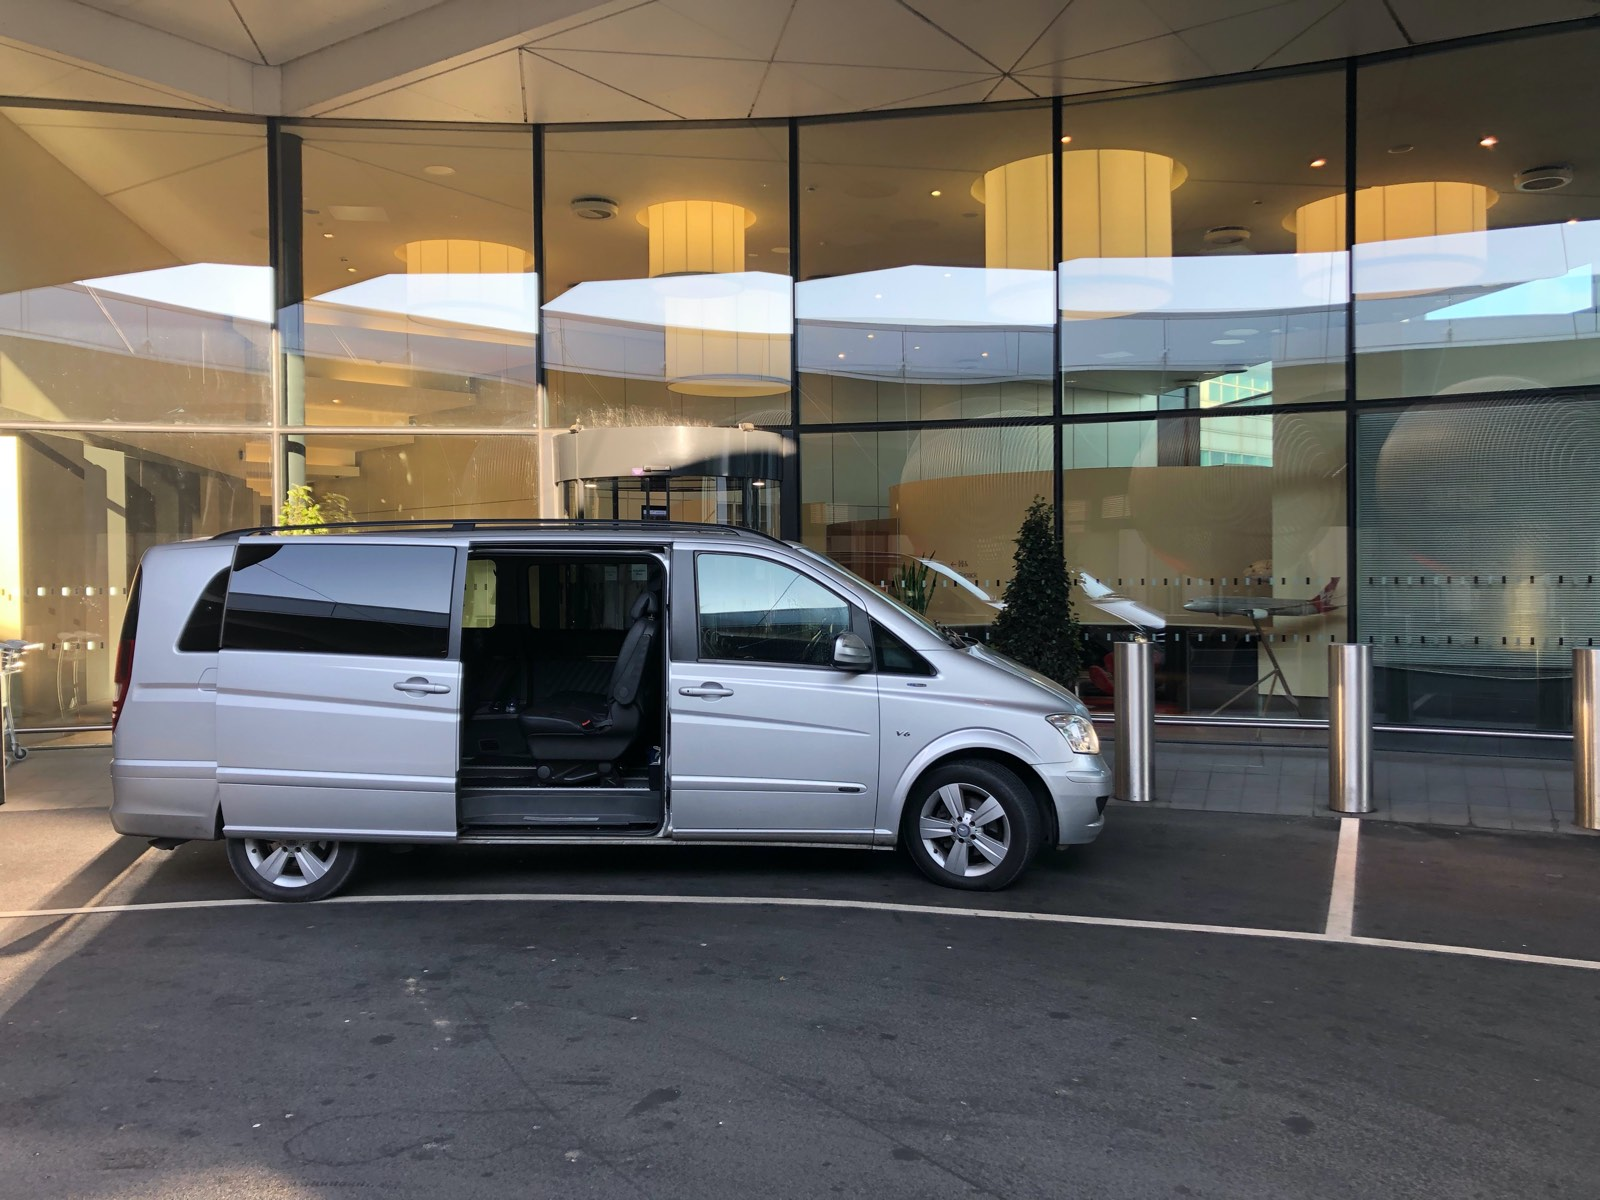 Our Mercedes Viano providing a Heathrow Airport Chauffeur Service to Virgin Upper Class Wing